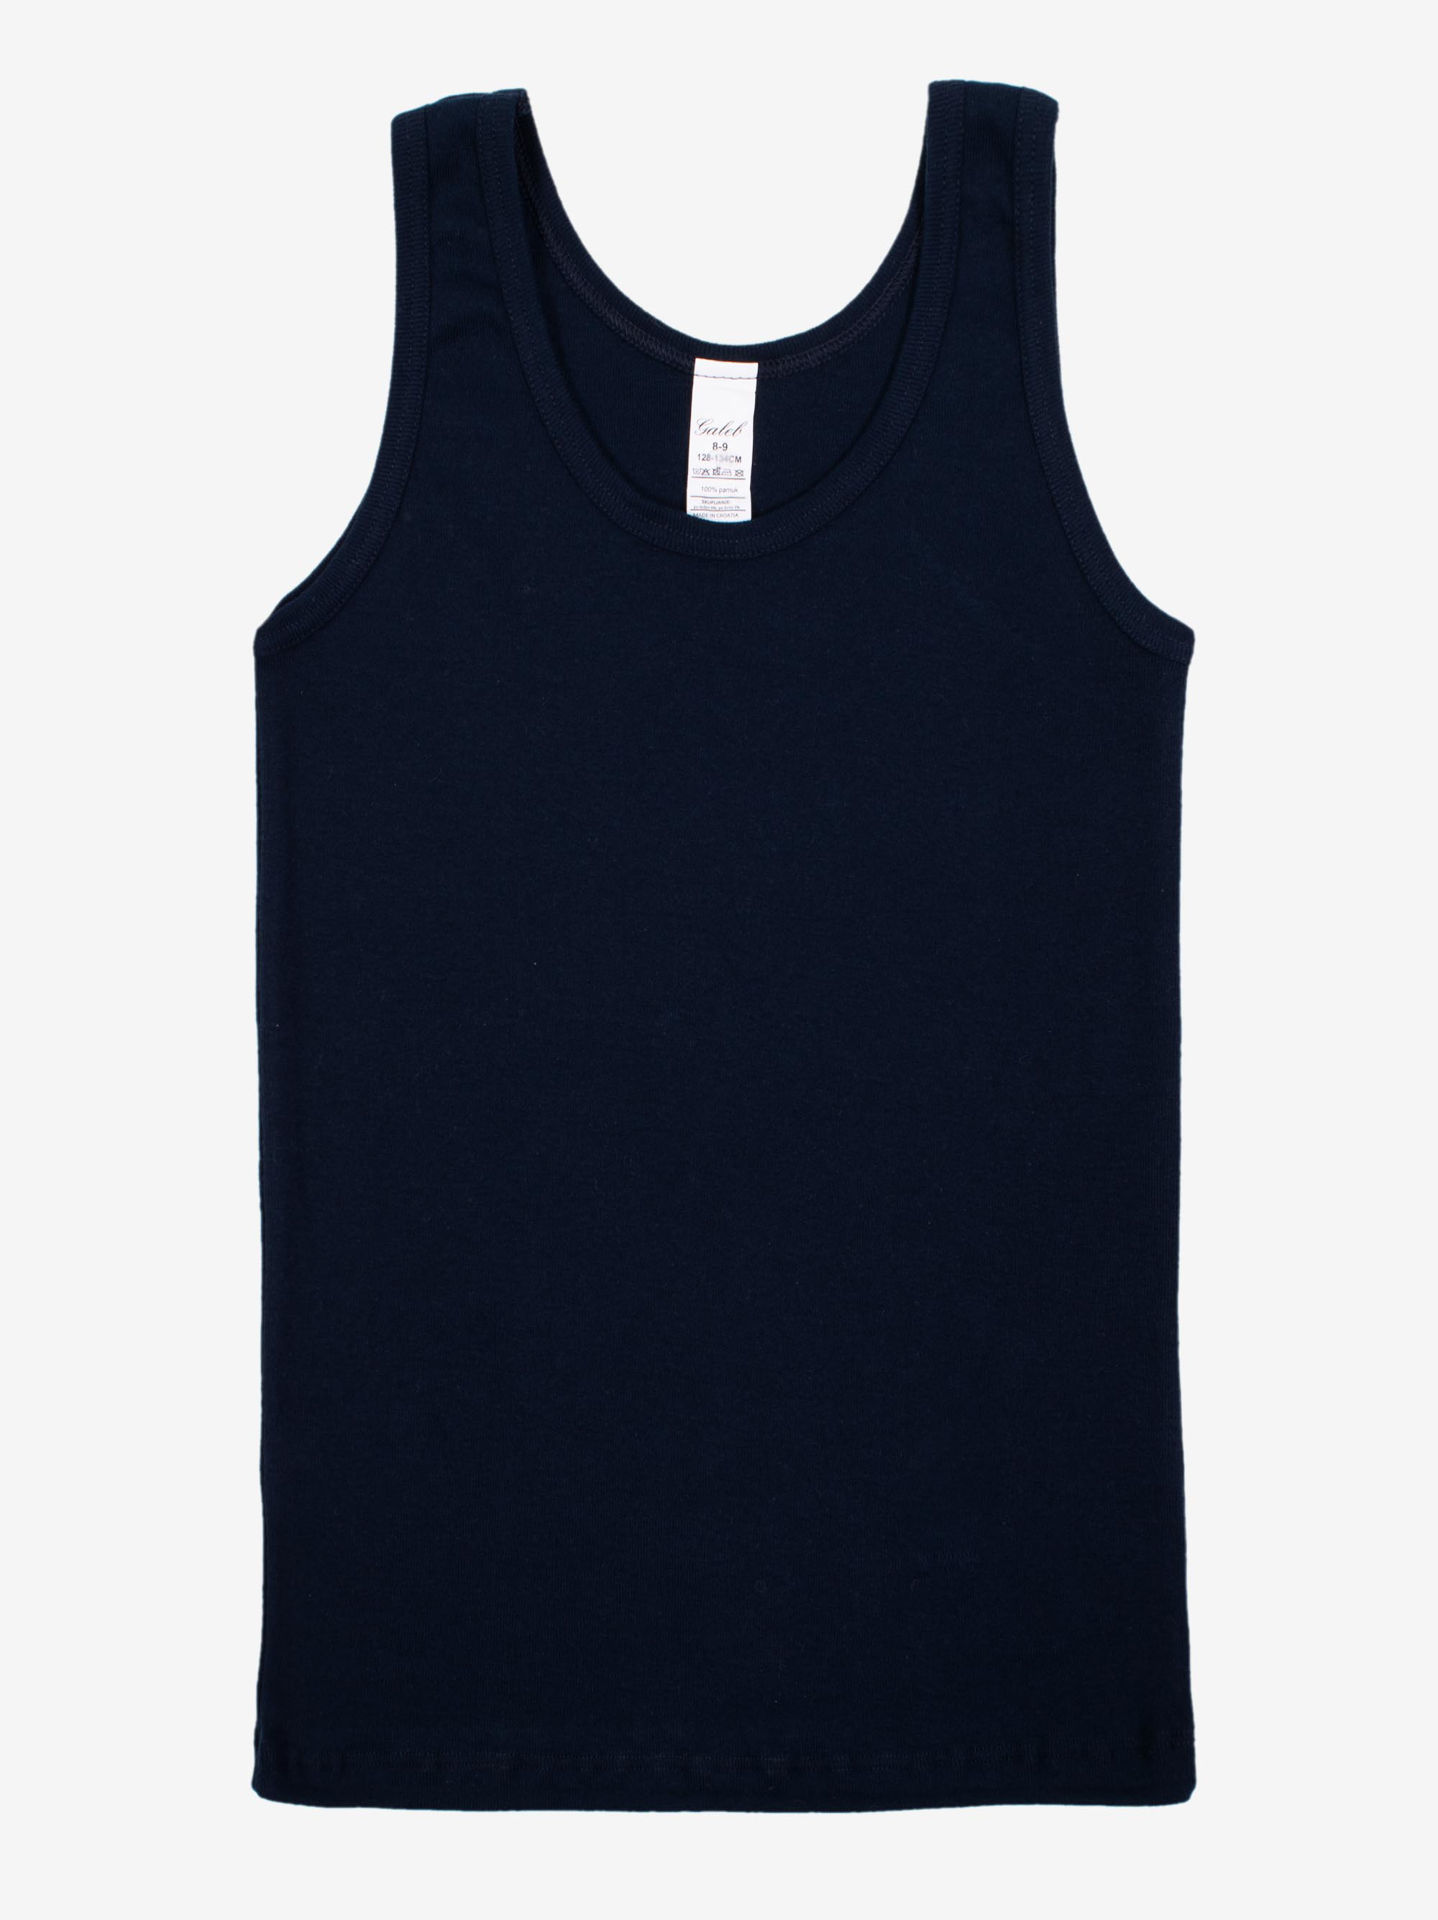 Picture of Boy's undershirt